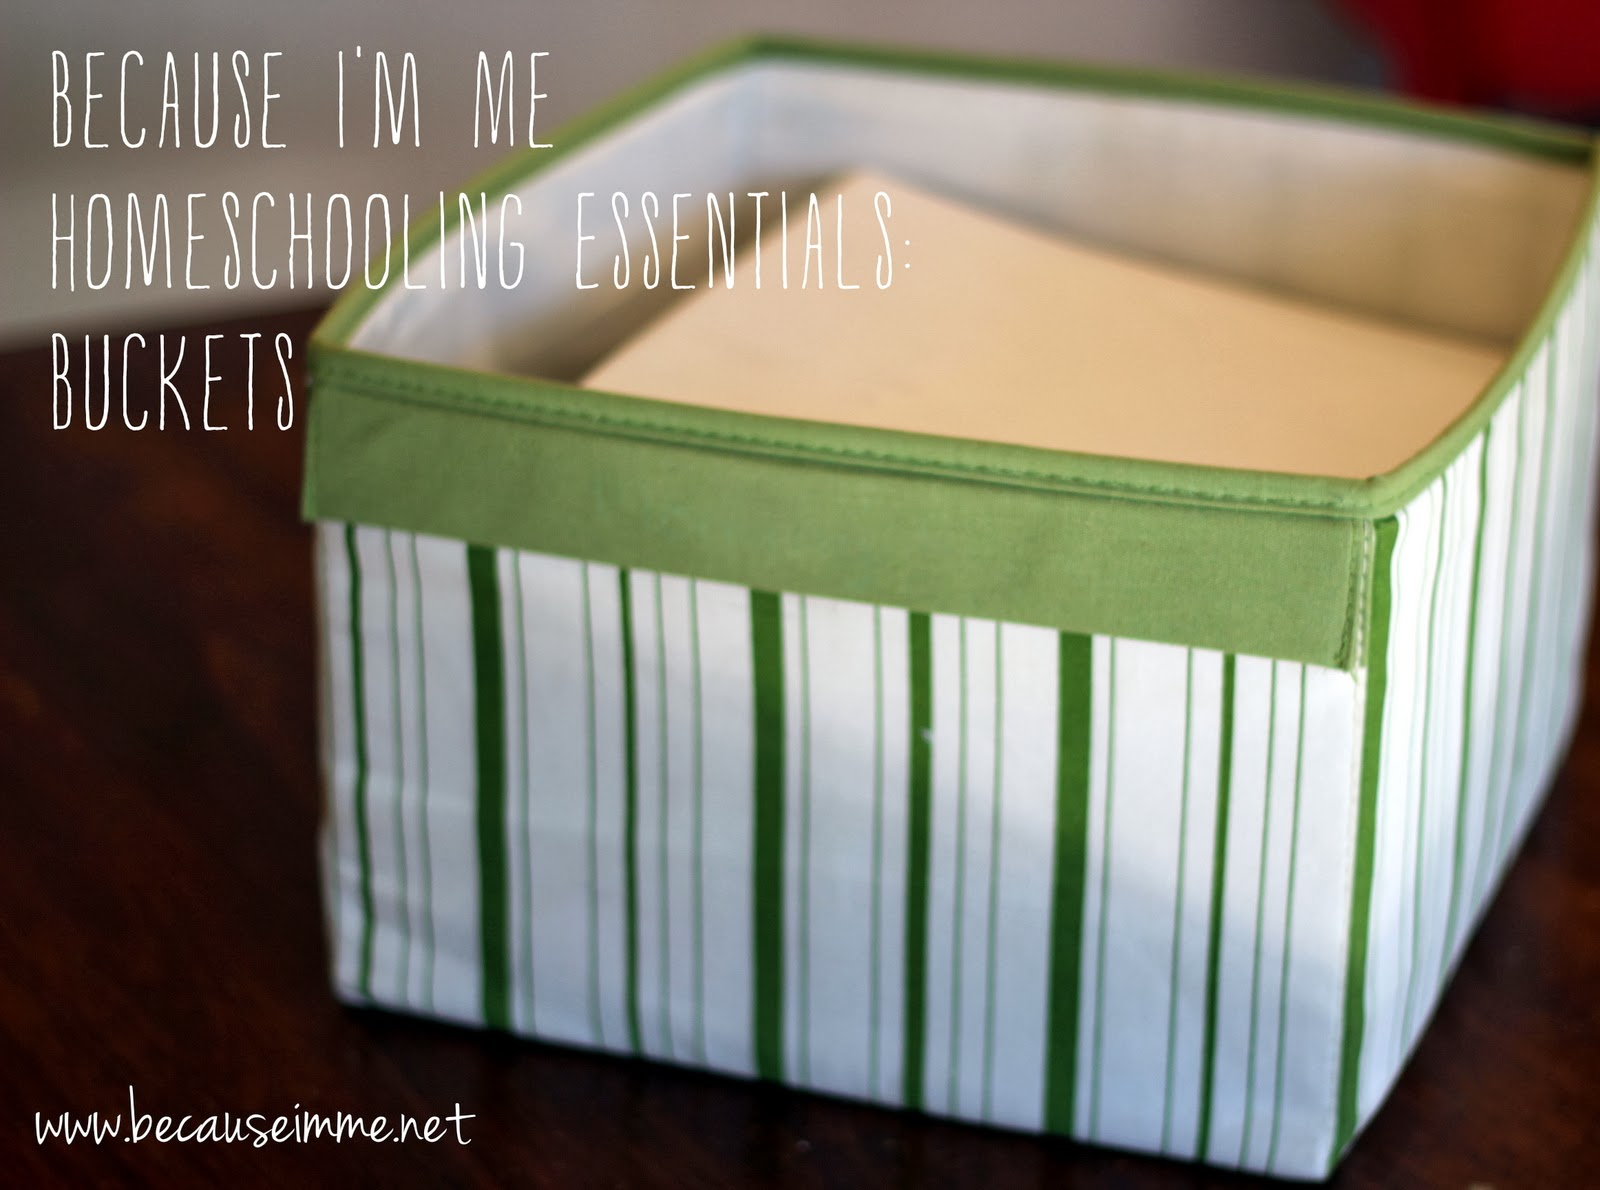 Because I'm Me Homeschooling Essentials: Buckets, sharing what works for a larger homeschooling family